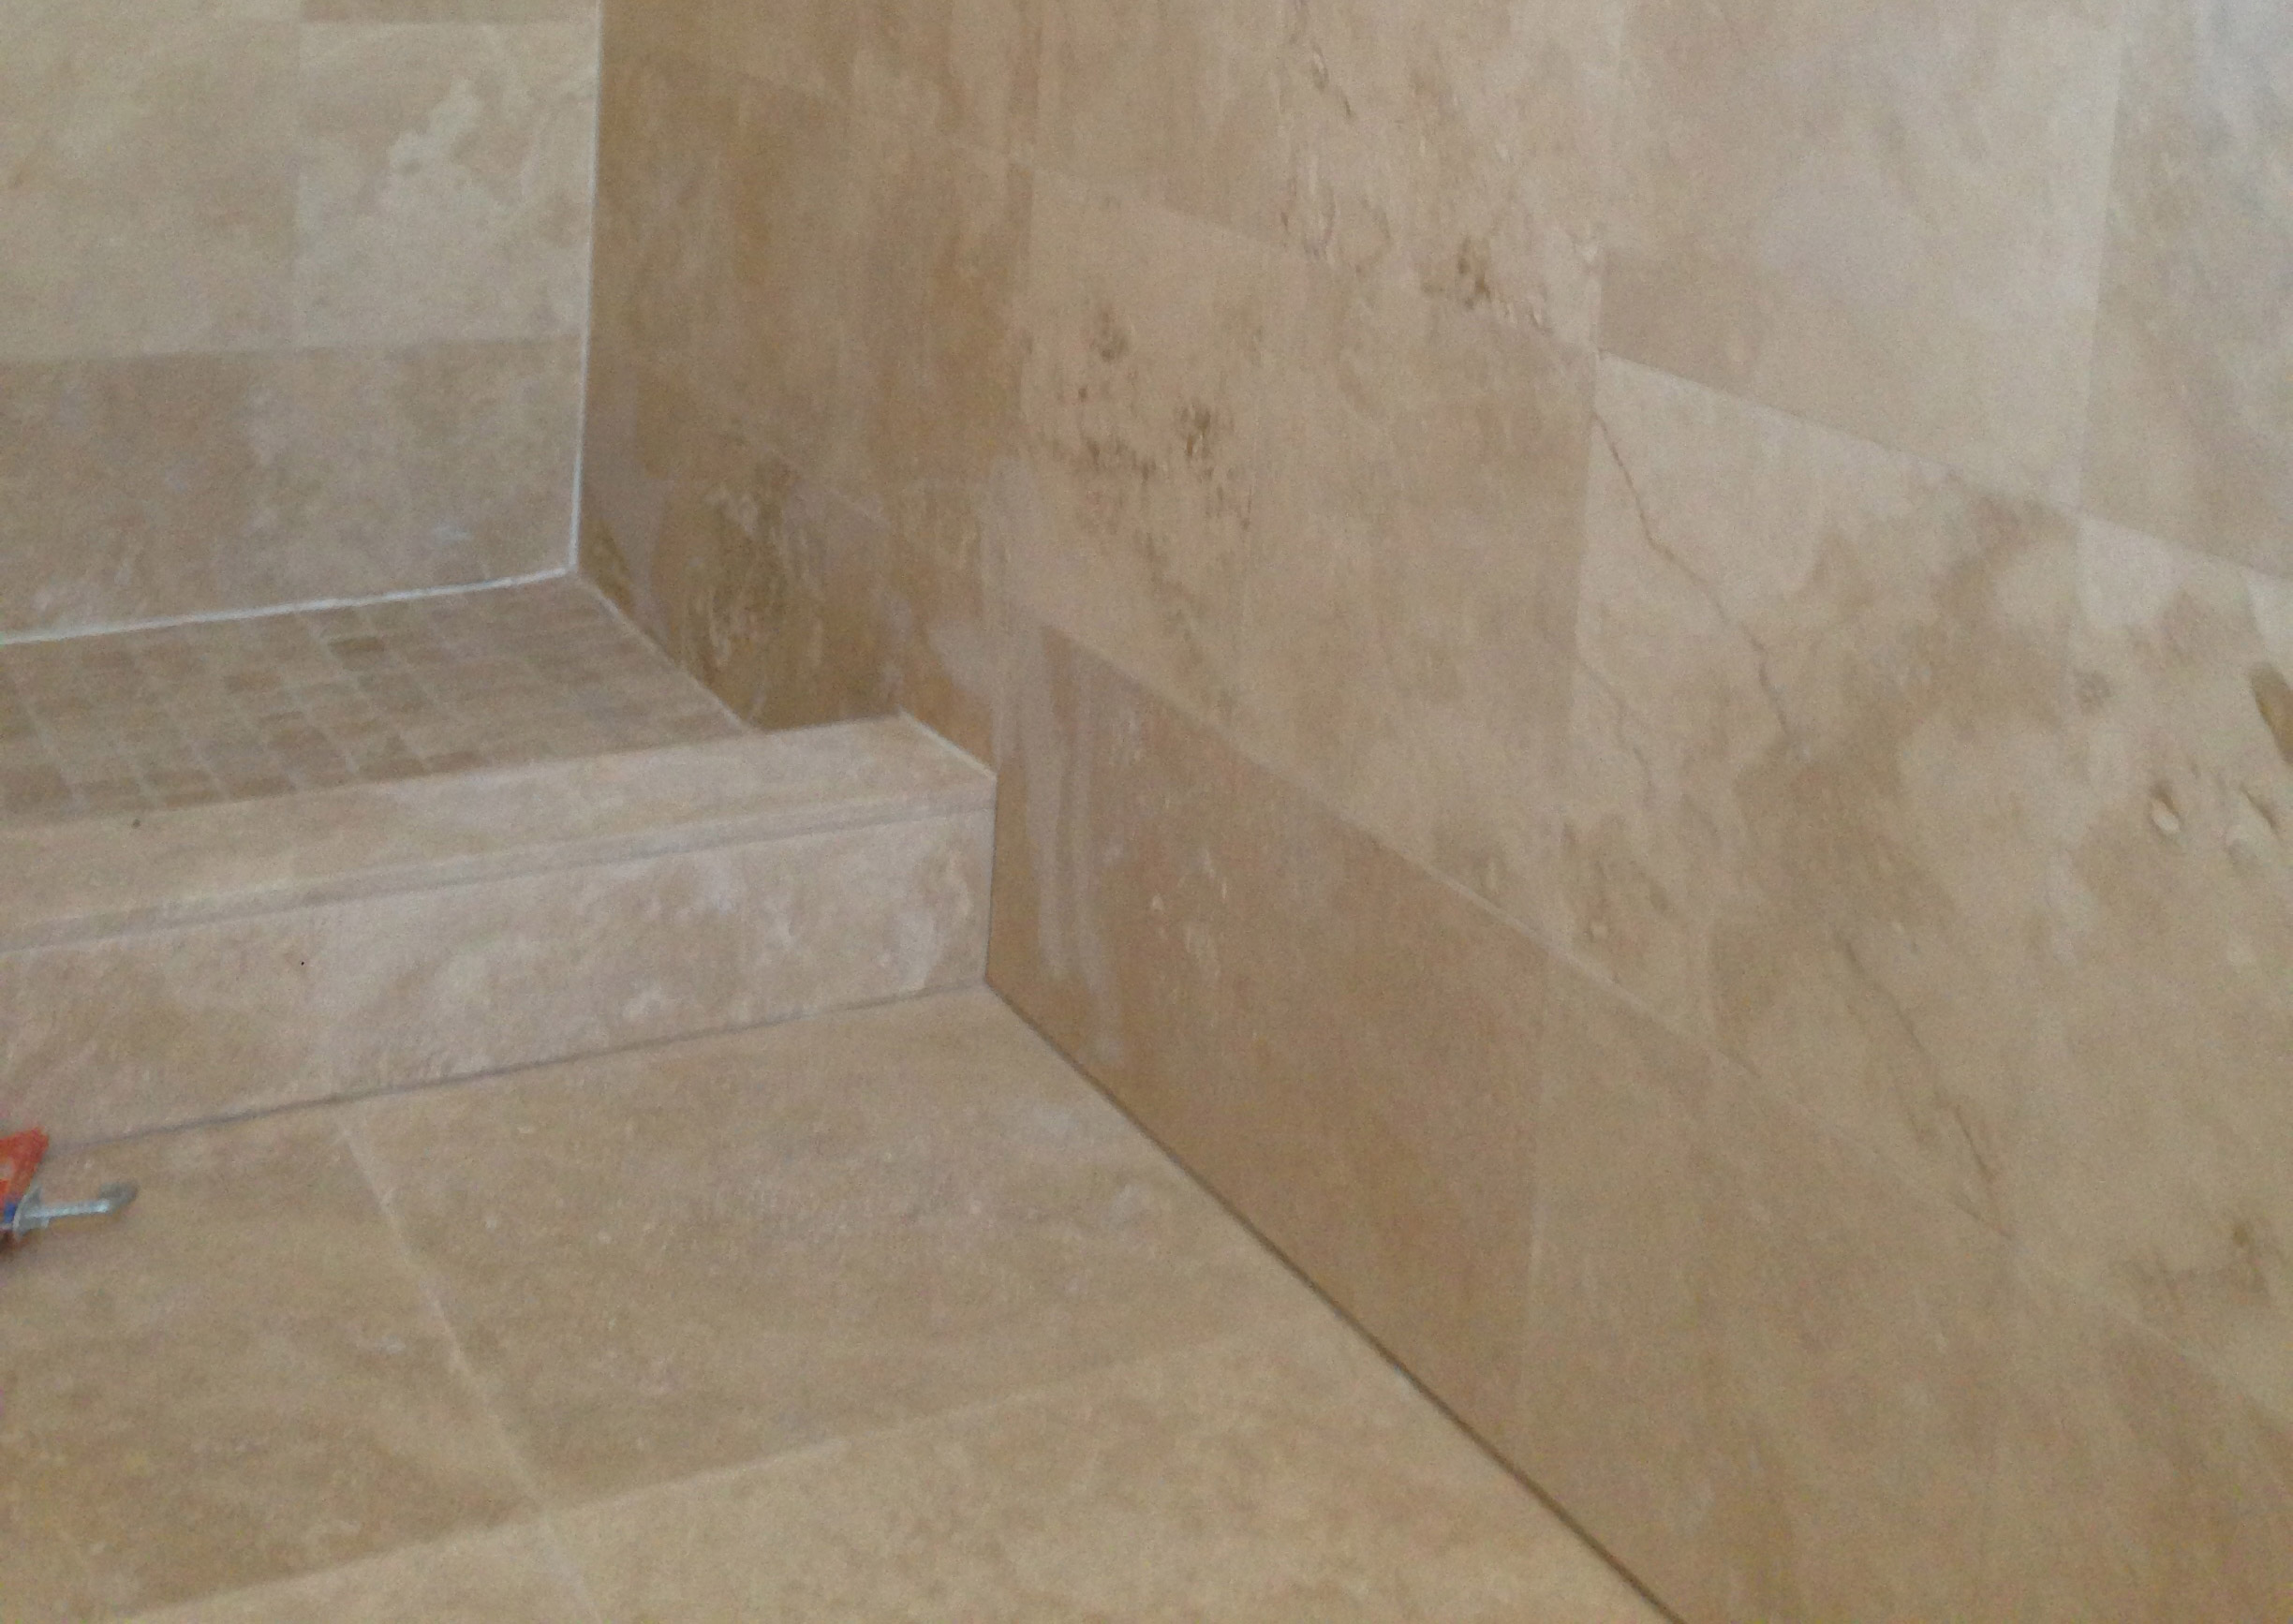 Tile and stone for floors and walls in ponte vedra florida bathroom floor wall and shower travertine installed kitchen backsplash tile doublecrazyfo Choice Image